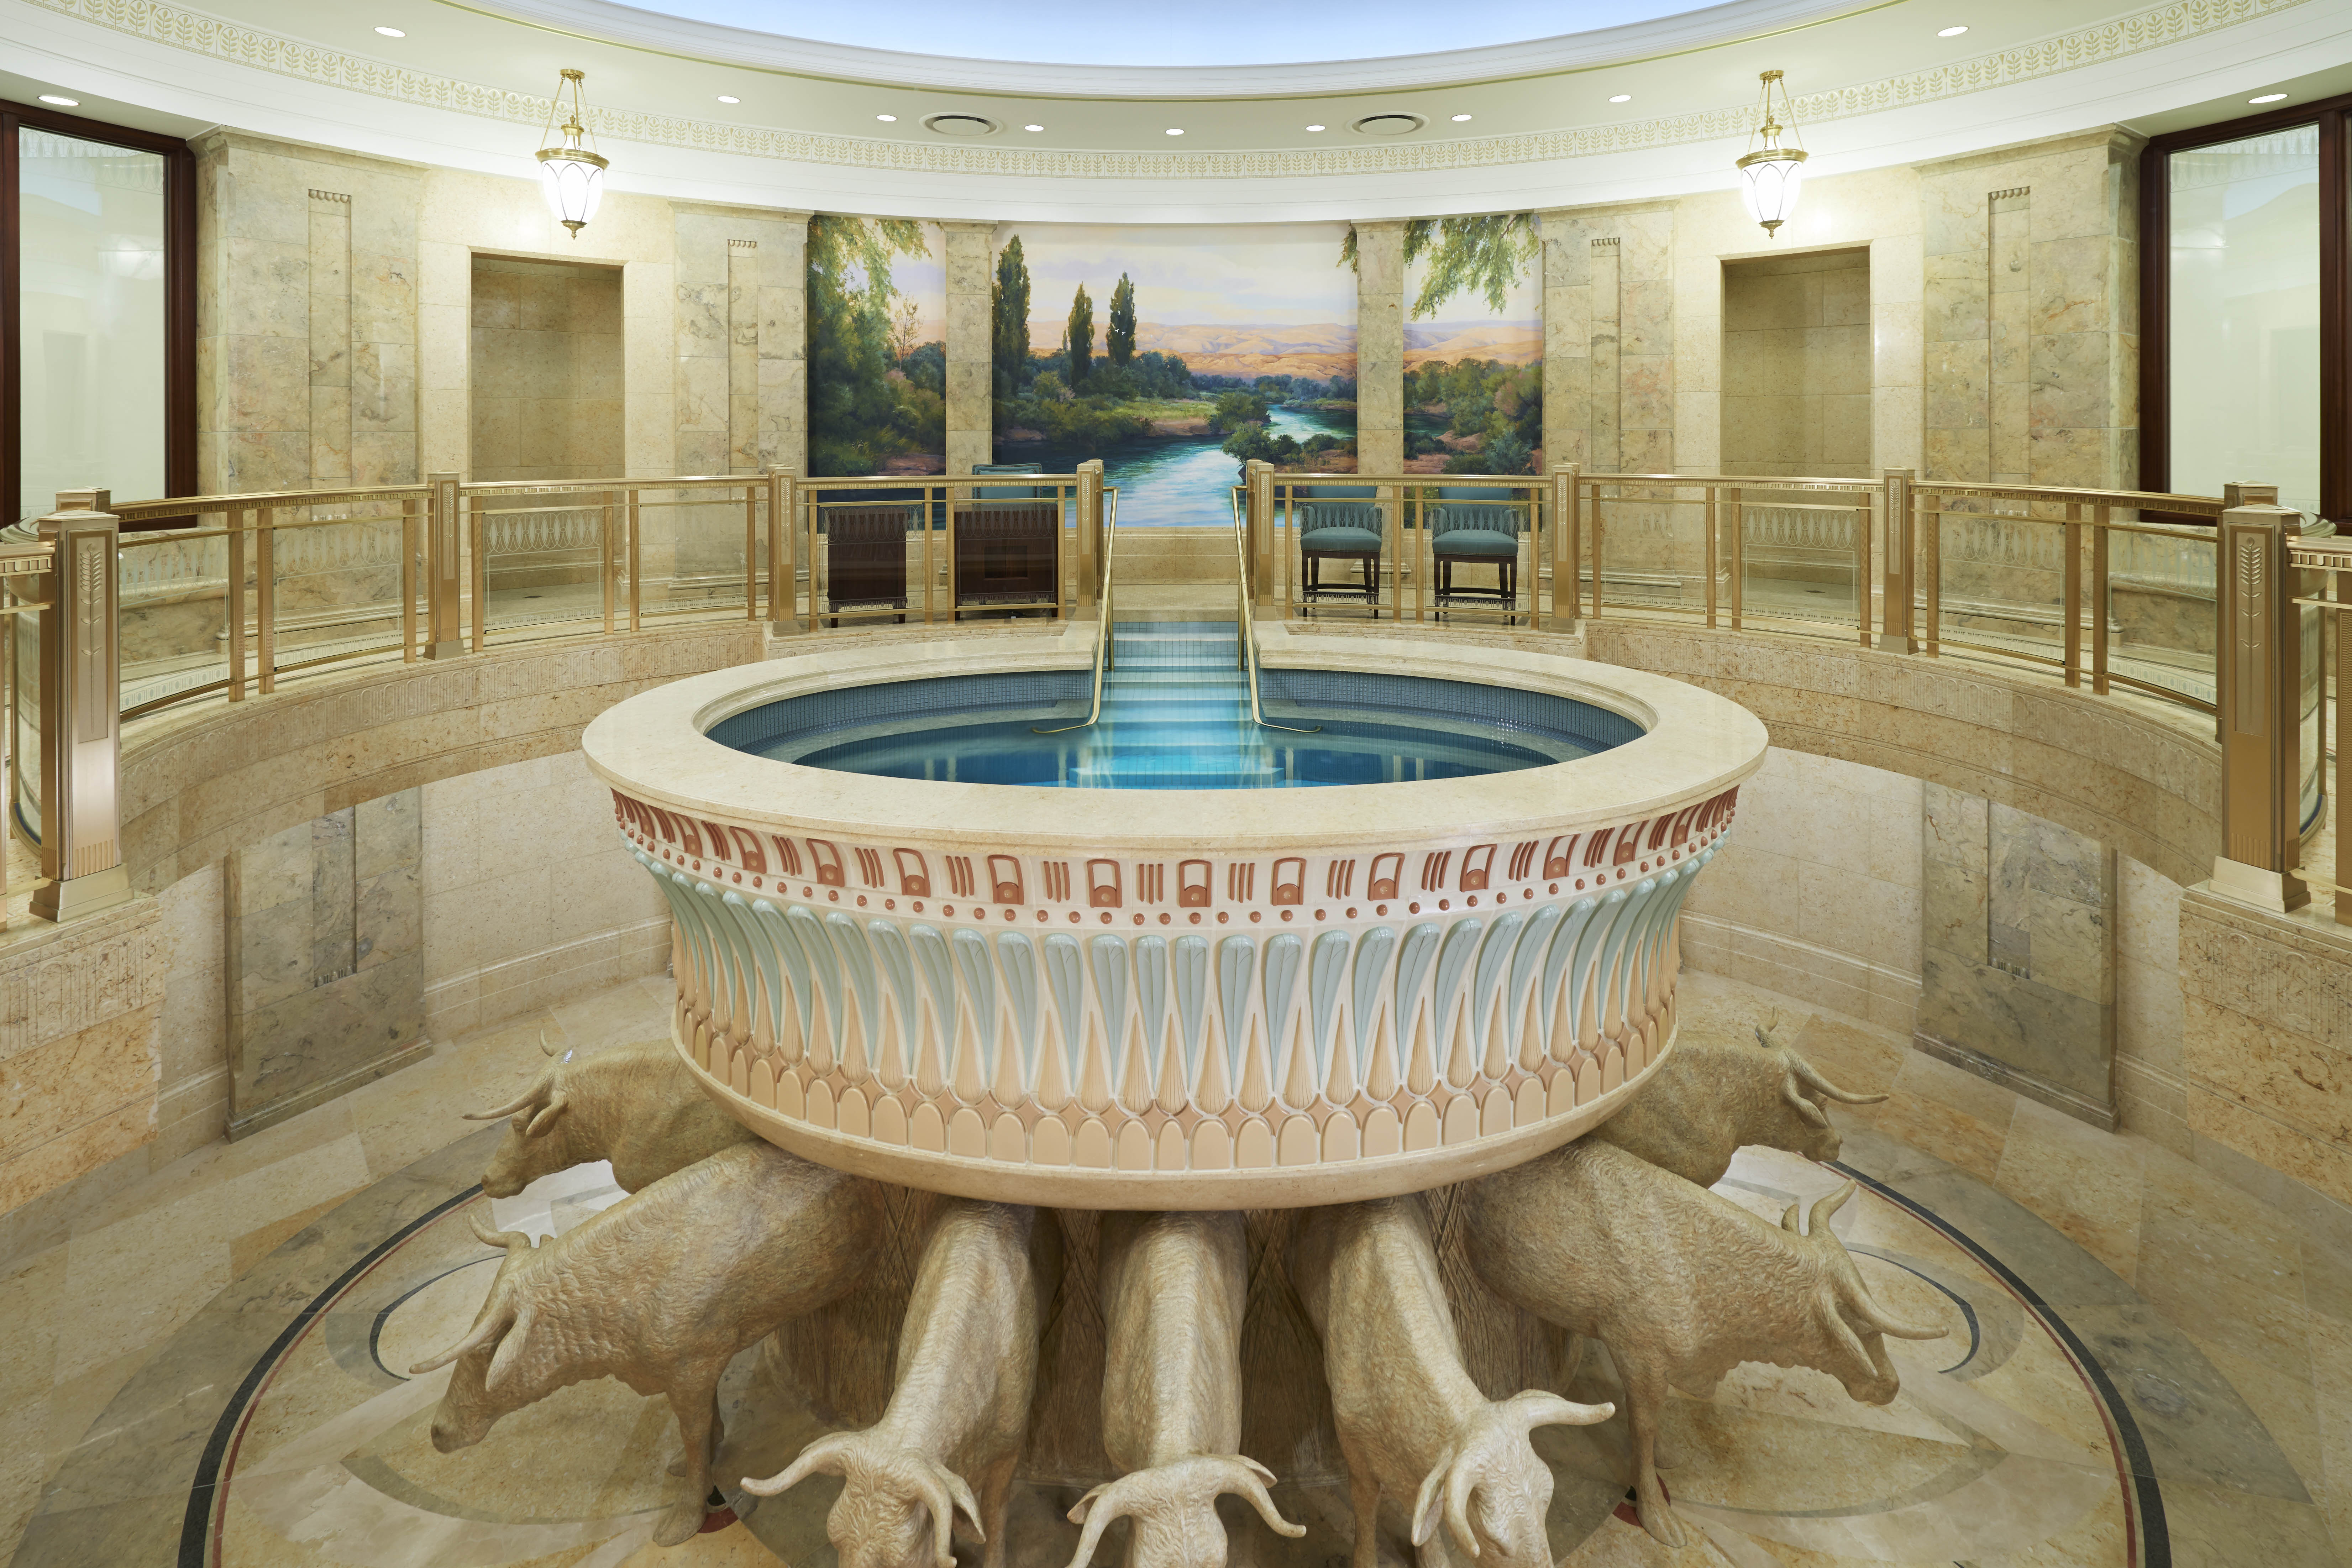 New Mormon policy gives teen boys power to baptize in the temple ...